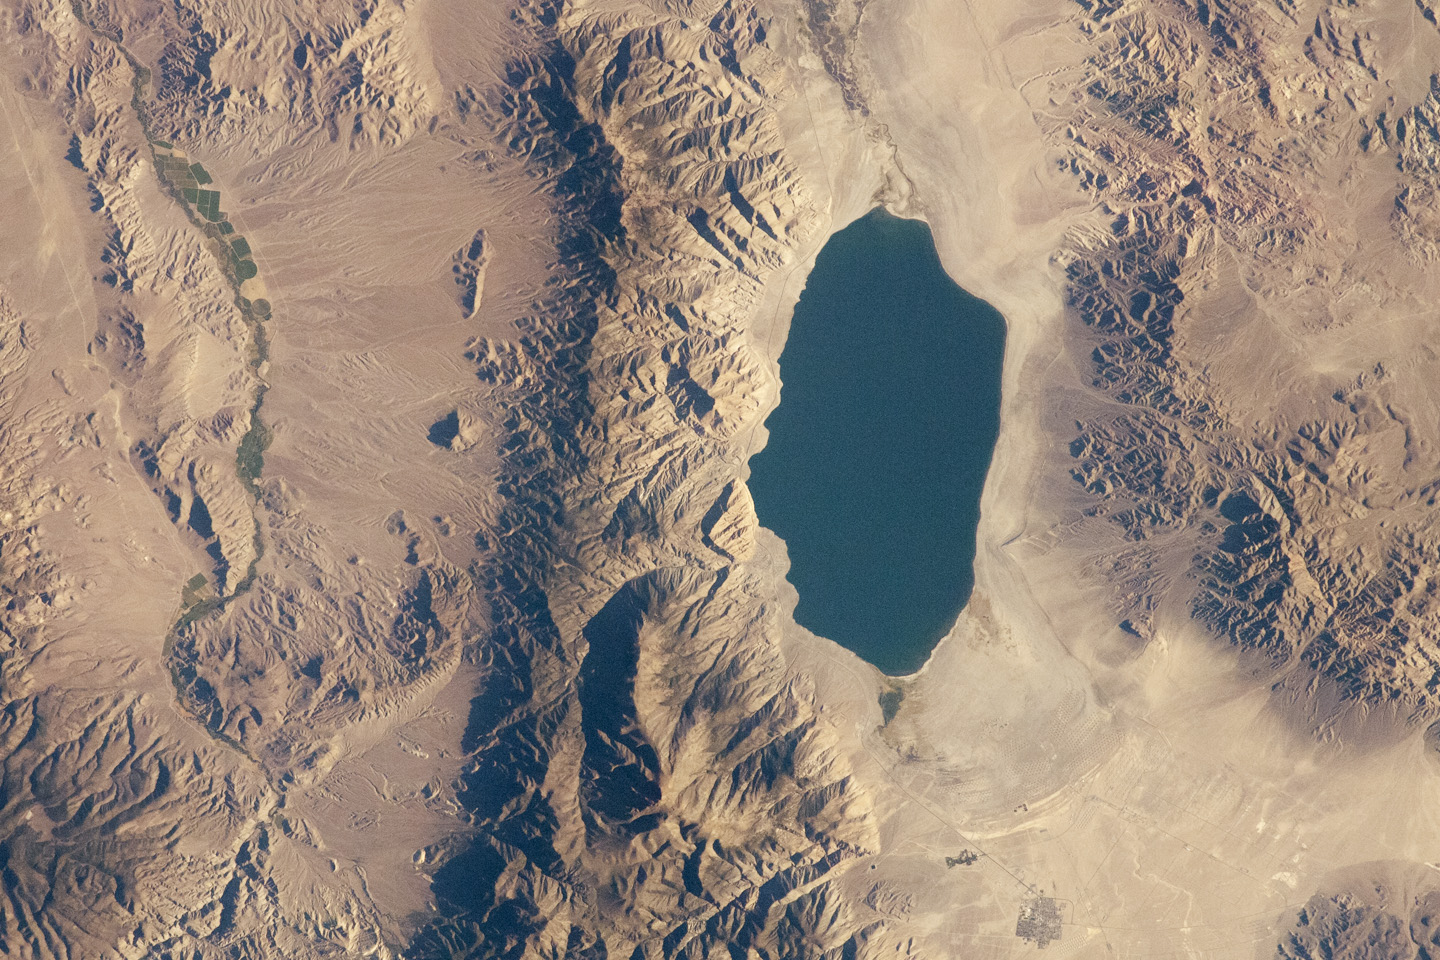 Today's Image of the Day comes thanks to the NASA Earth Observatory and features a look at the beautiful Walker Lake in Nevada.